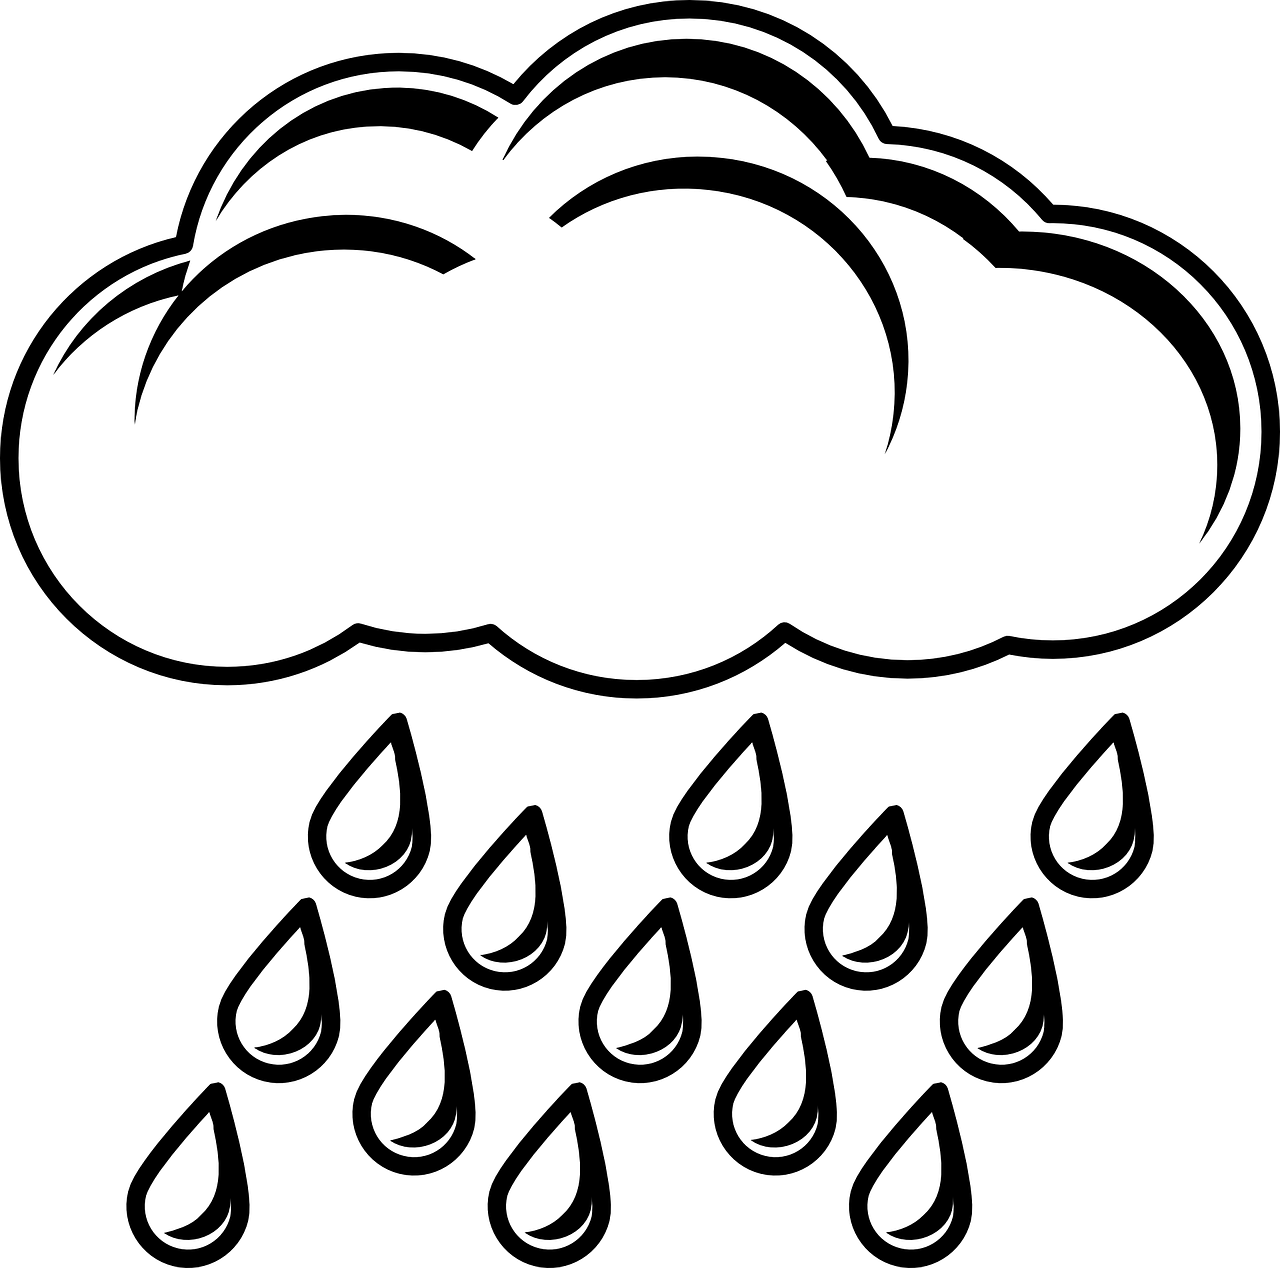 Raincloud Rain Cloud Nature Shower Cloudy Rain Clouds Clouds Rain Clipart